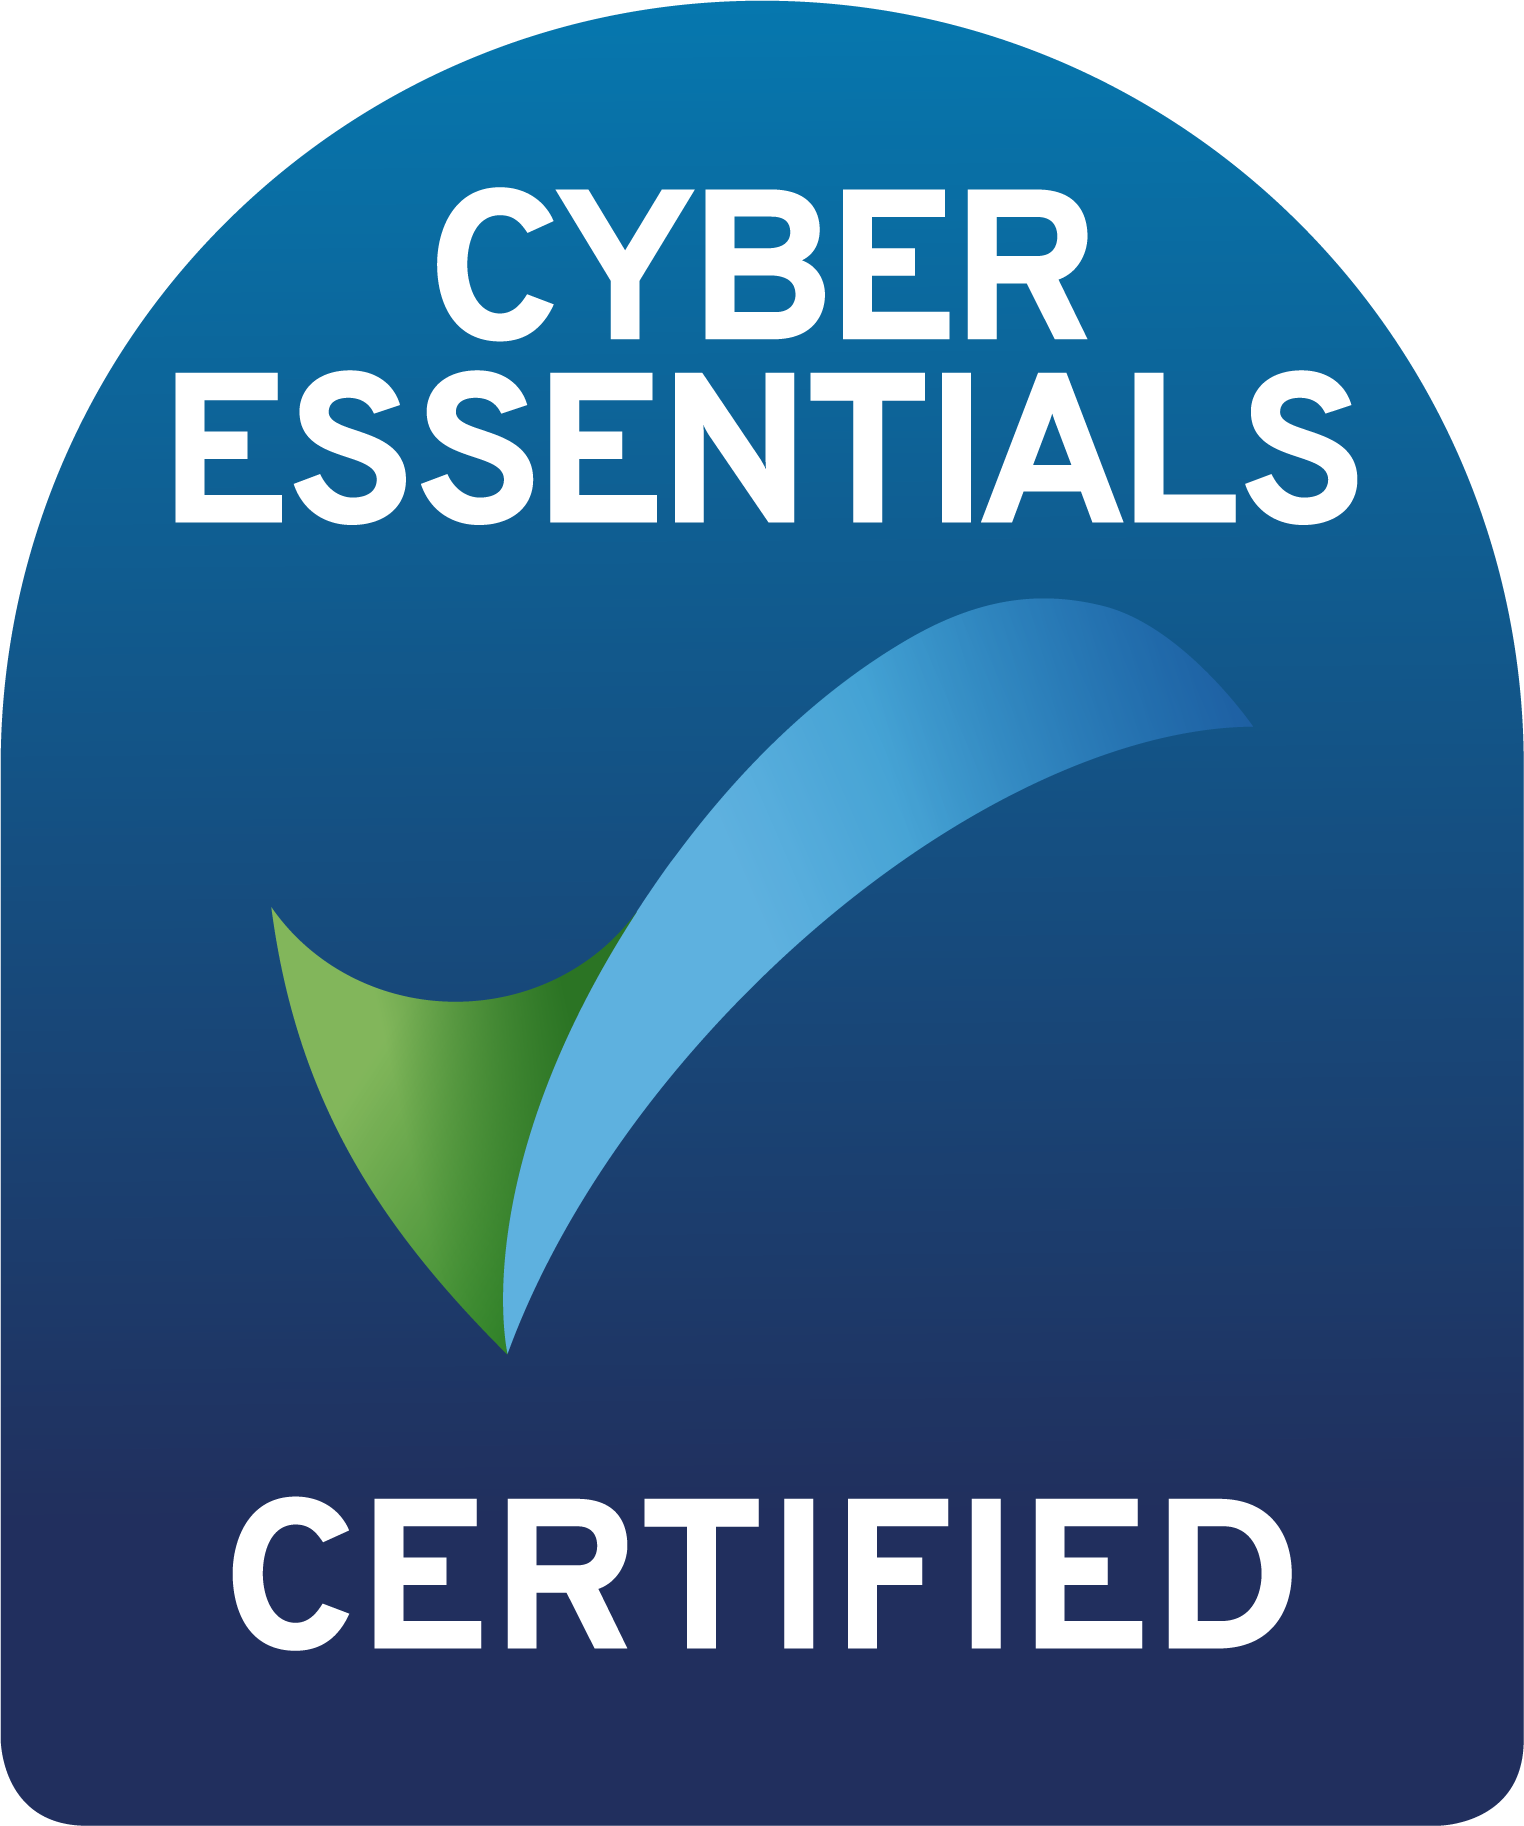 accredited cyber essentials certified